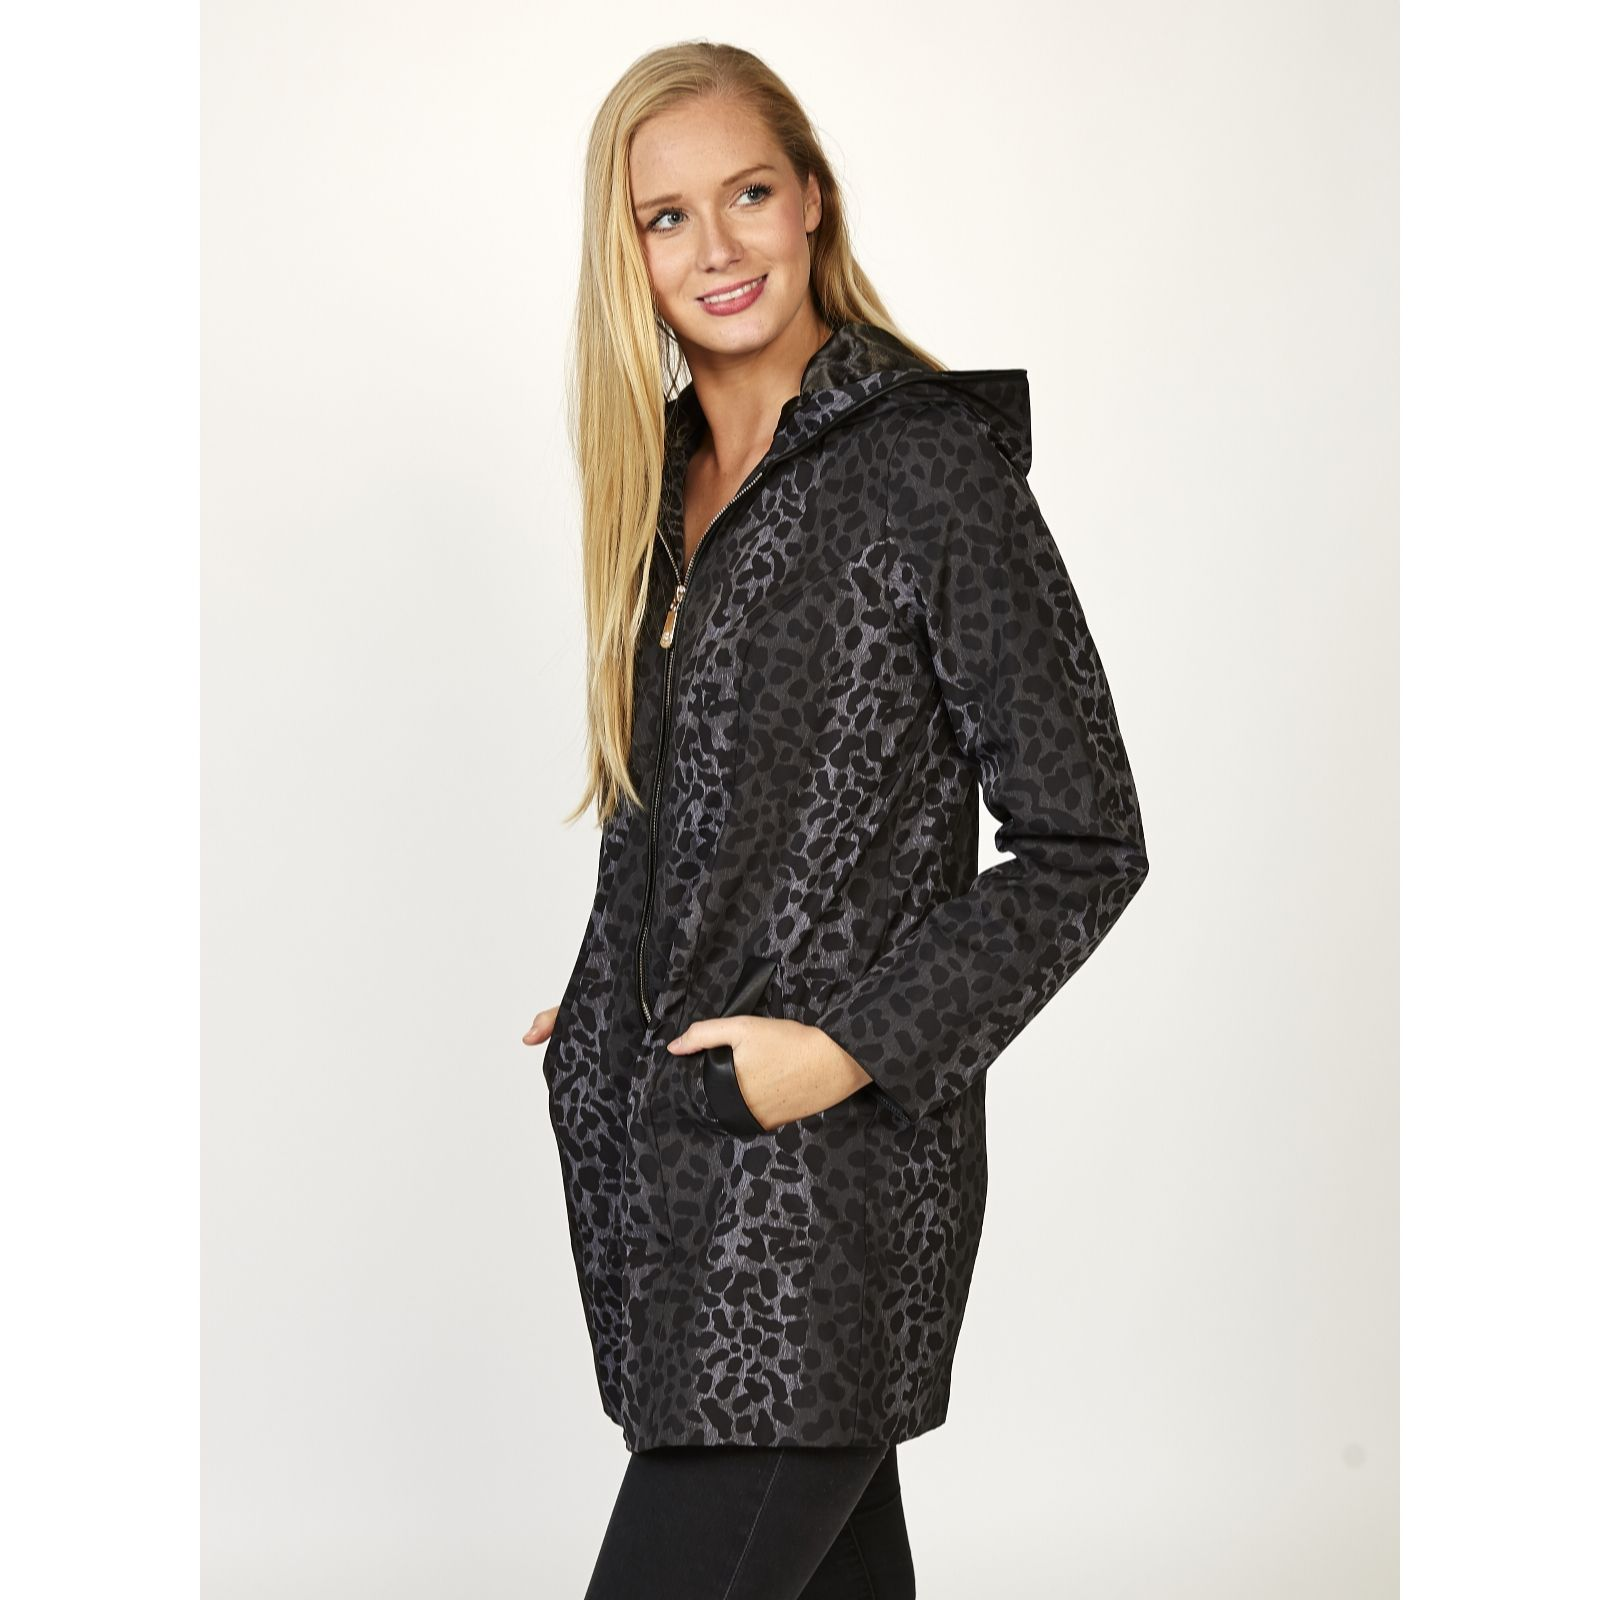 Coats and jackets qvc uk dennis basso water resistant leopard print jacket 167076 ccuart Gallery